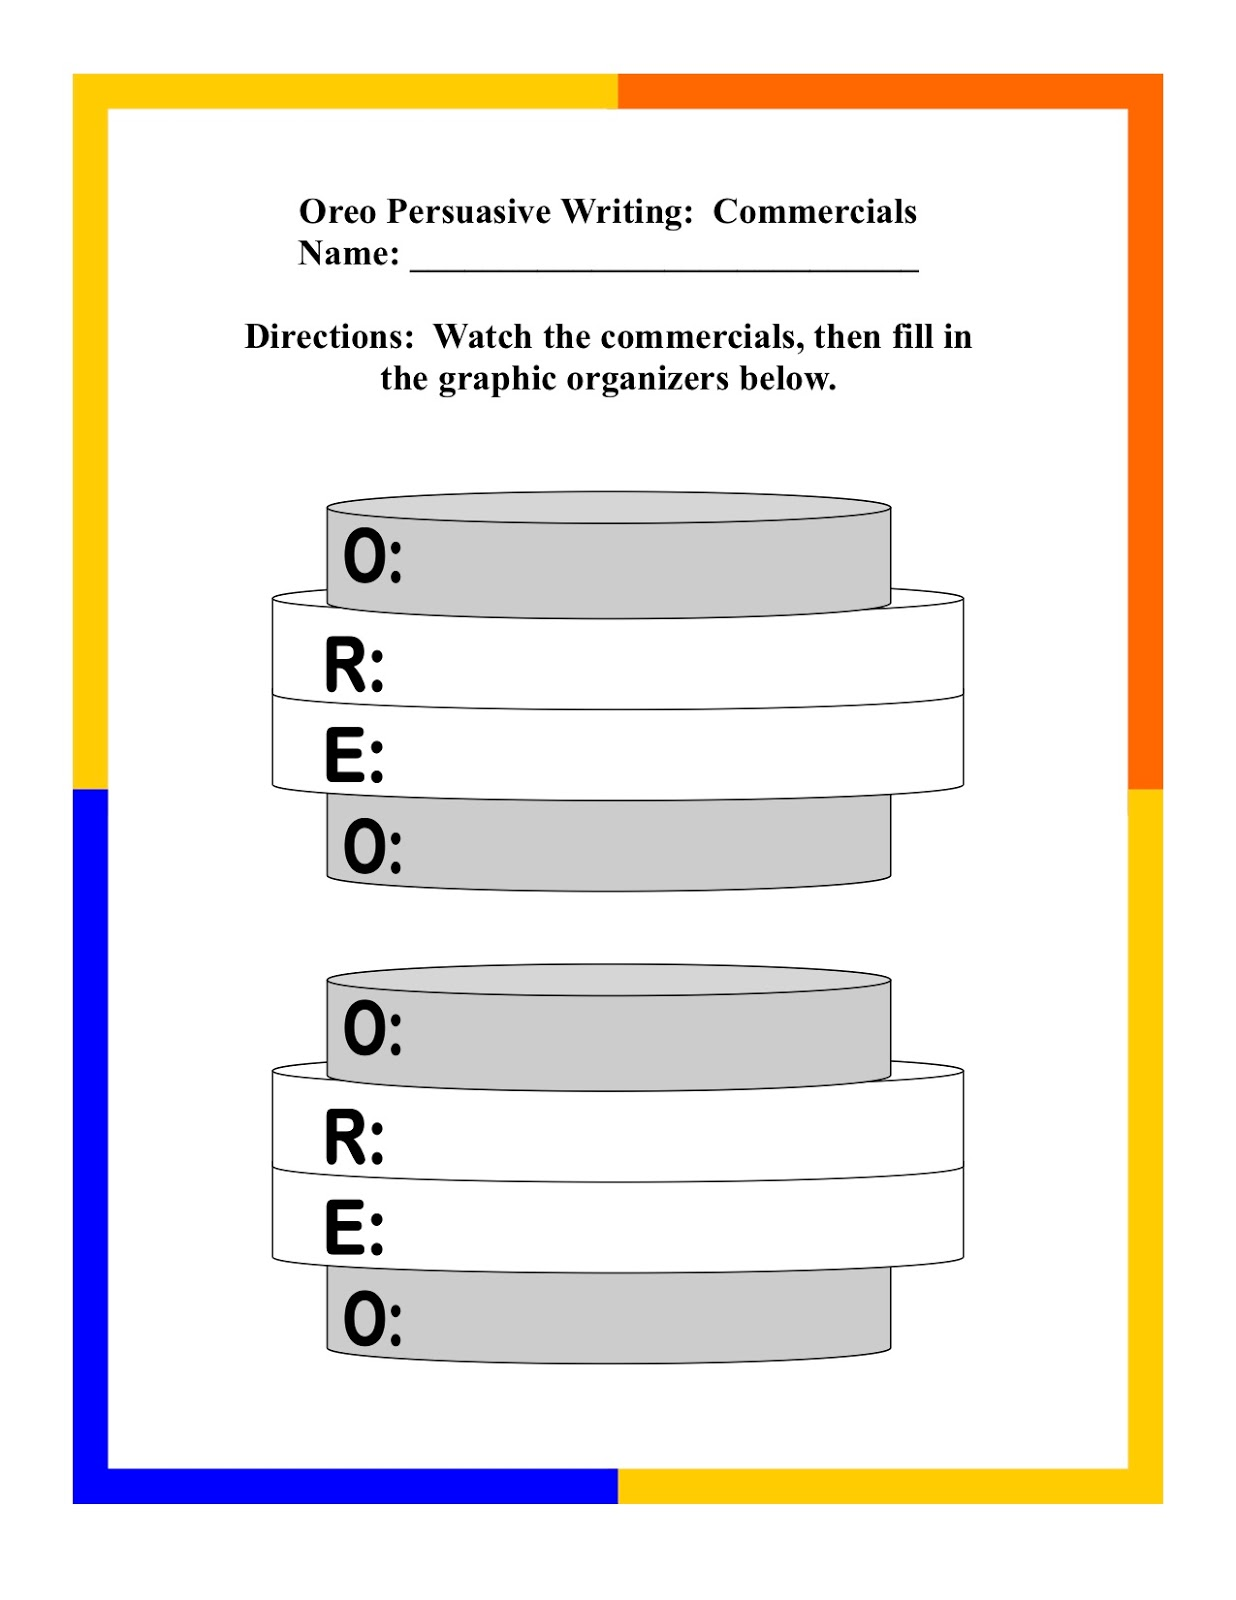 Oreo Persuasive Writing Graphic Organizer